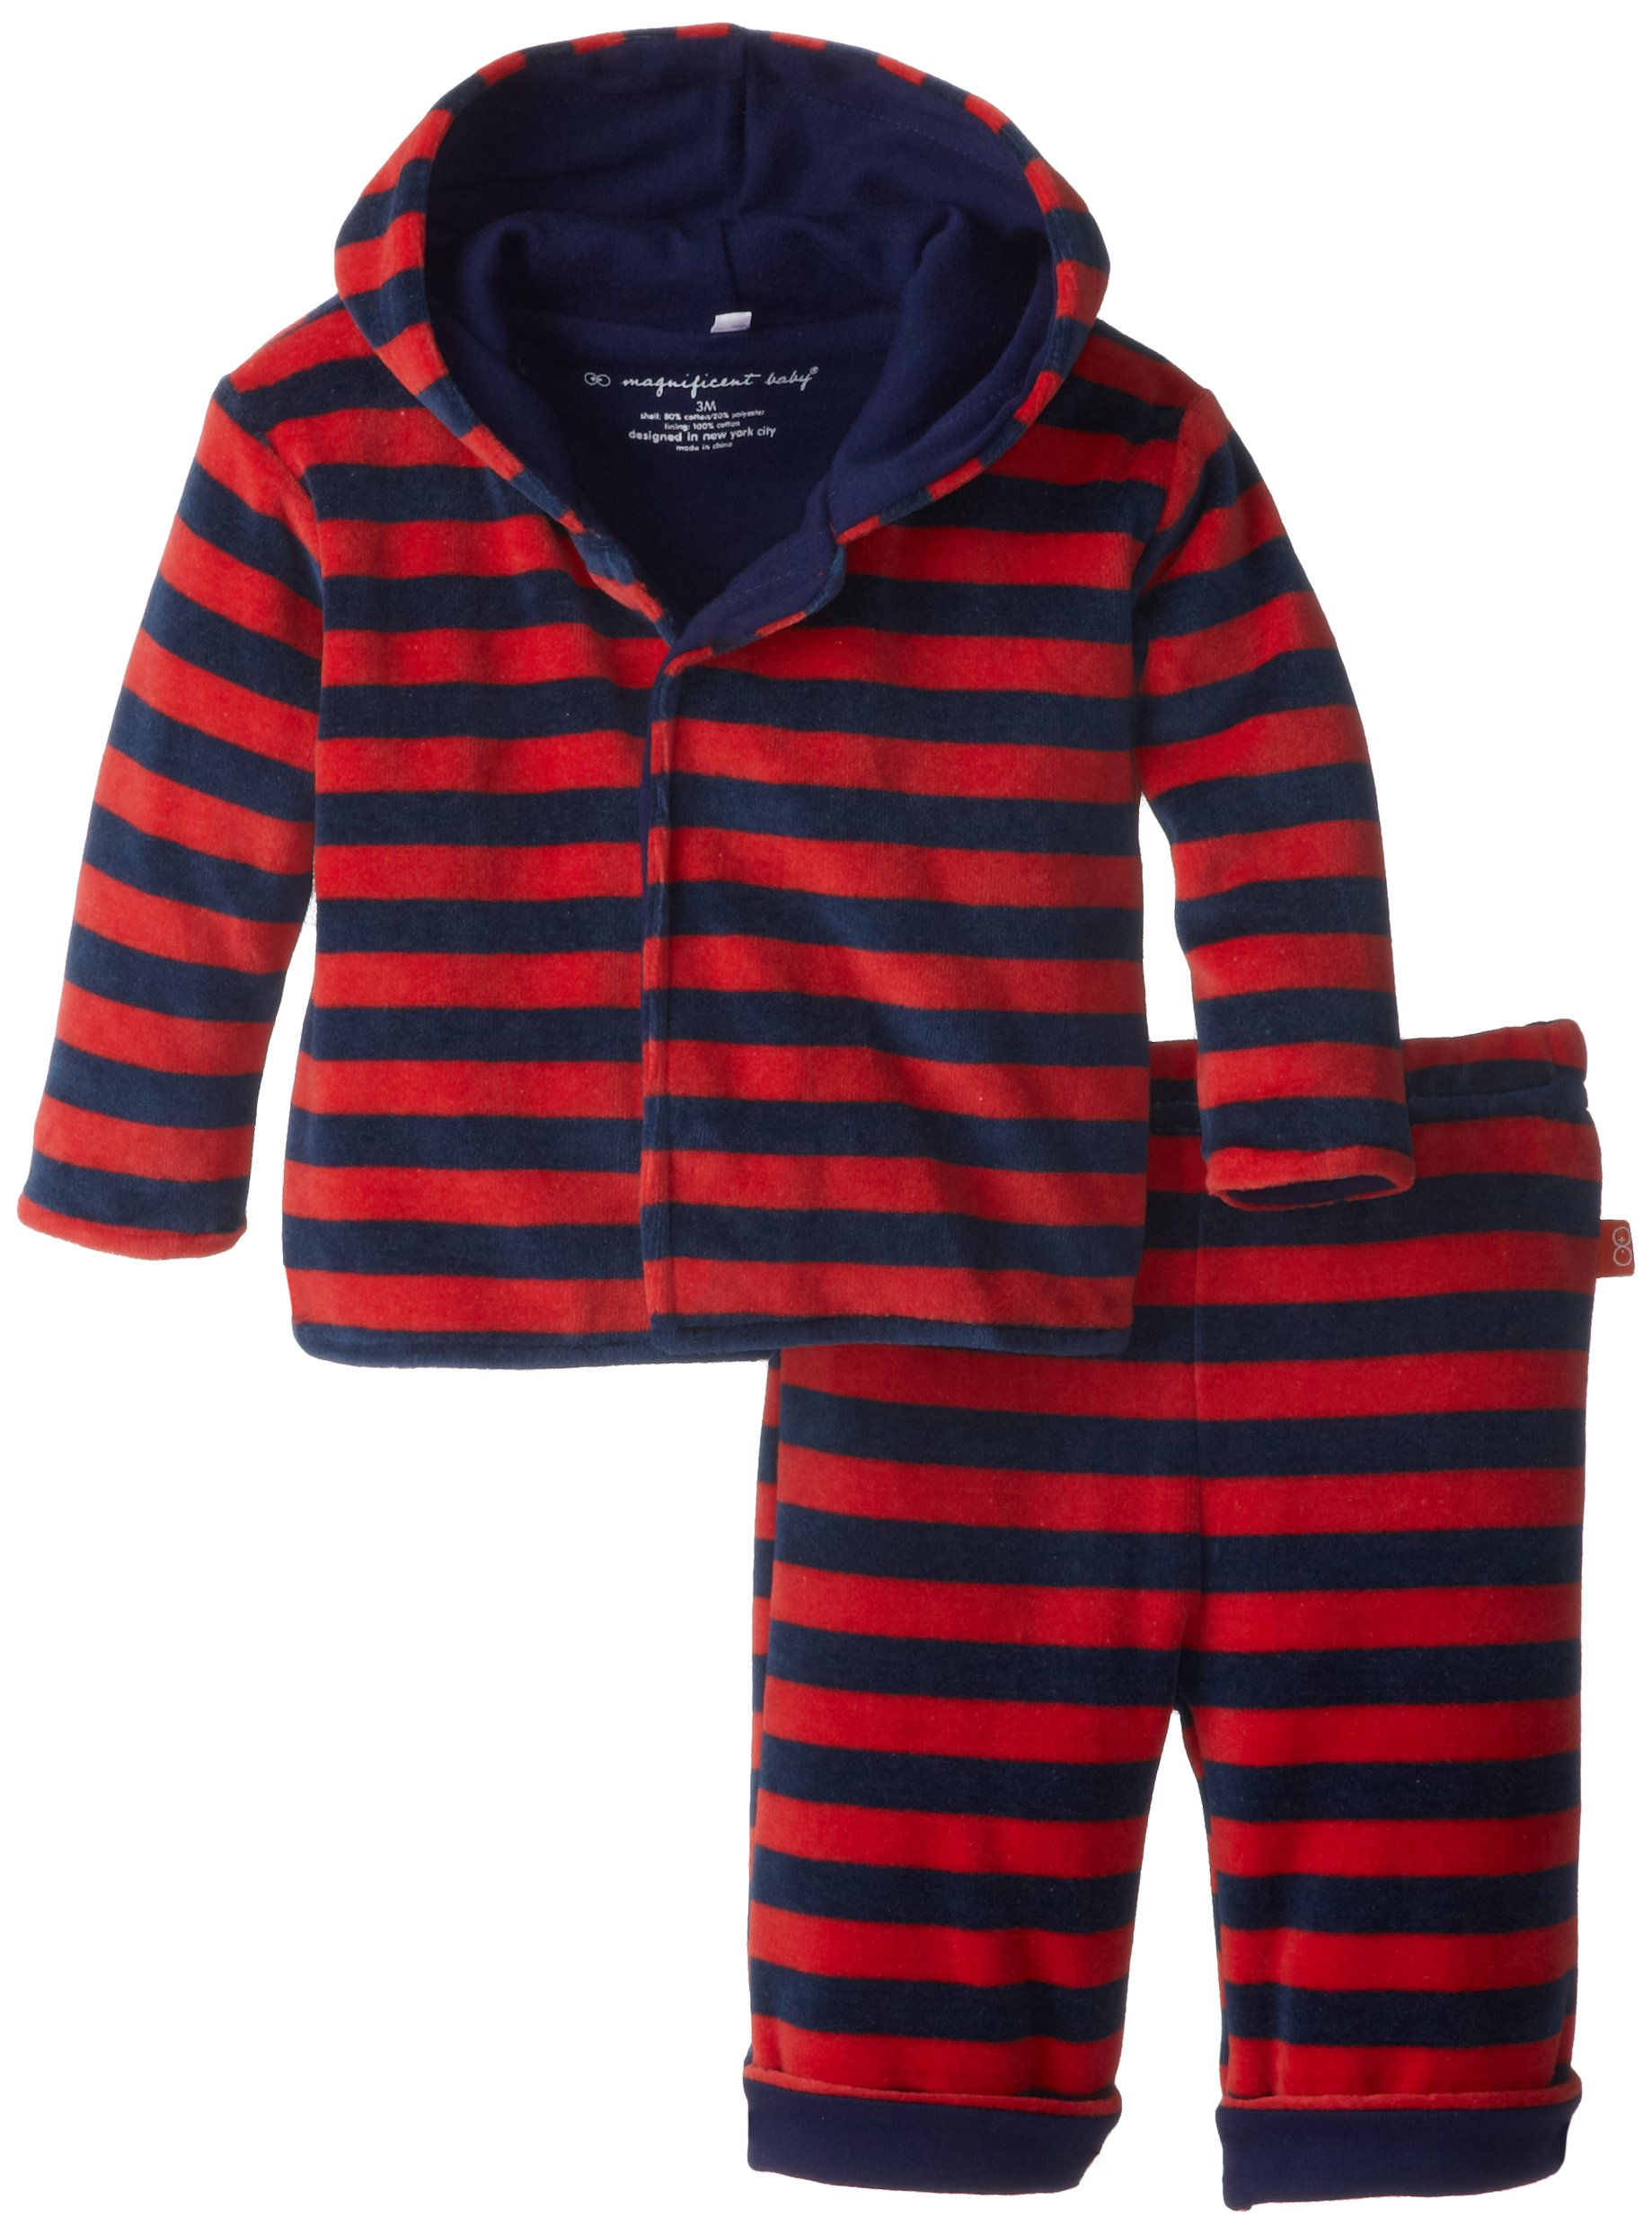 Magnificent Baby Baby Boys' Velour Hoodie and Pants, Red/Navy, 24 Months by Magnificent Baby